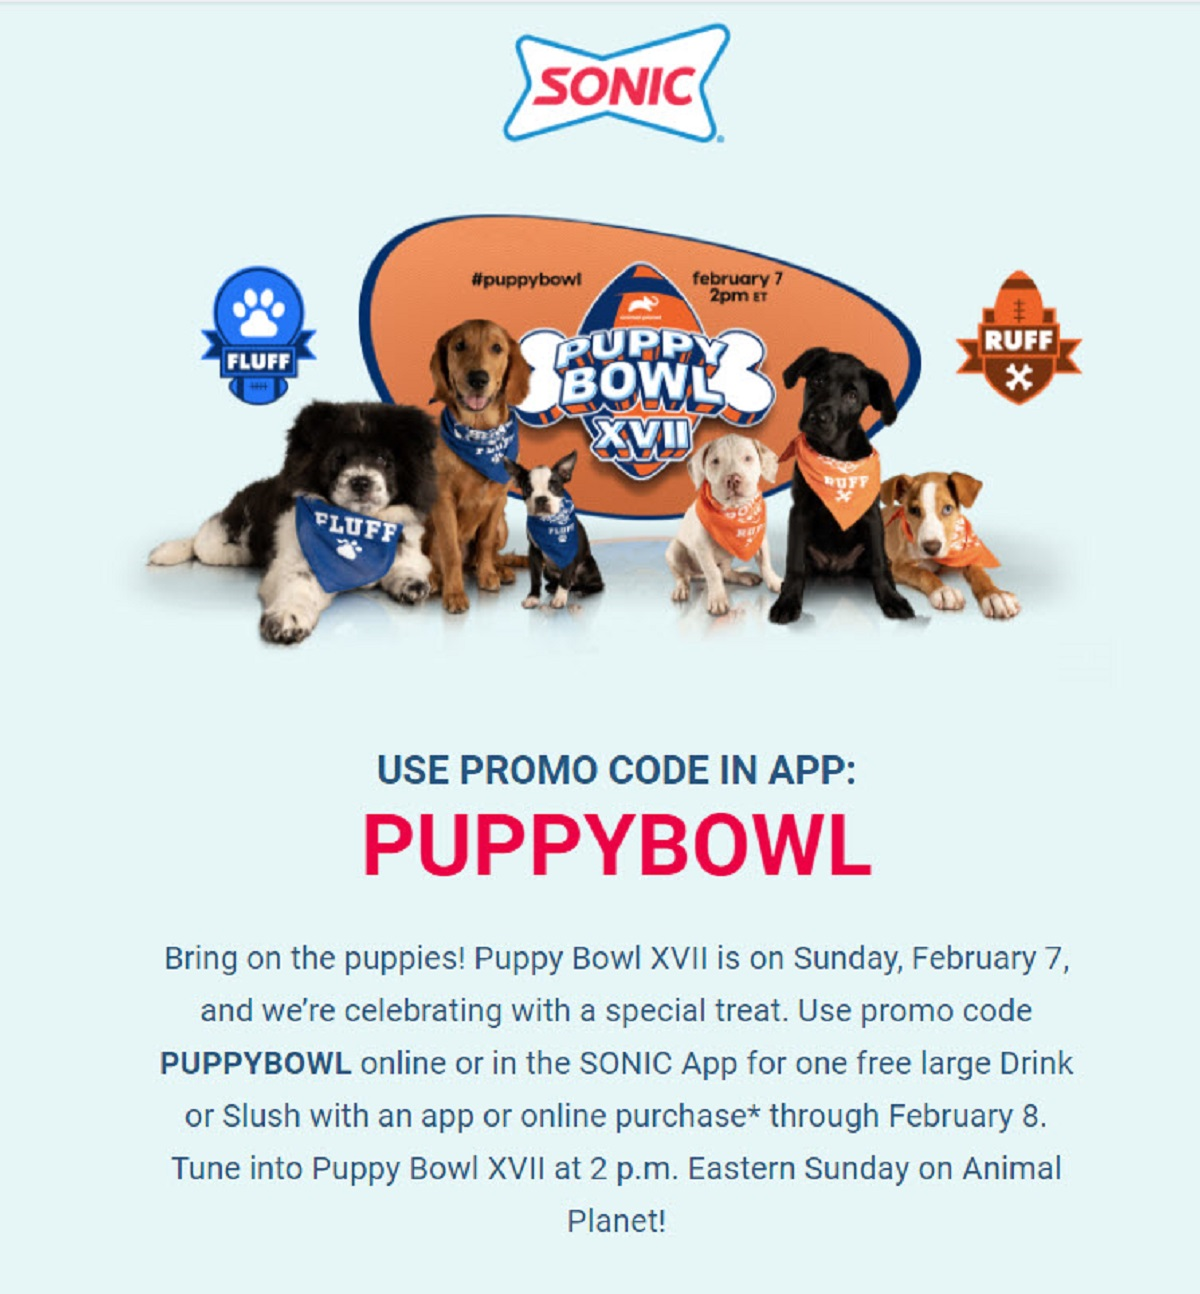 Sonic Puppy Bowl Free Drink or Slush Code